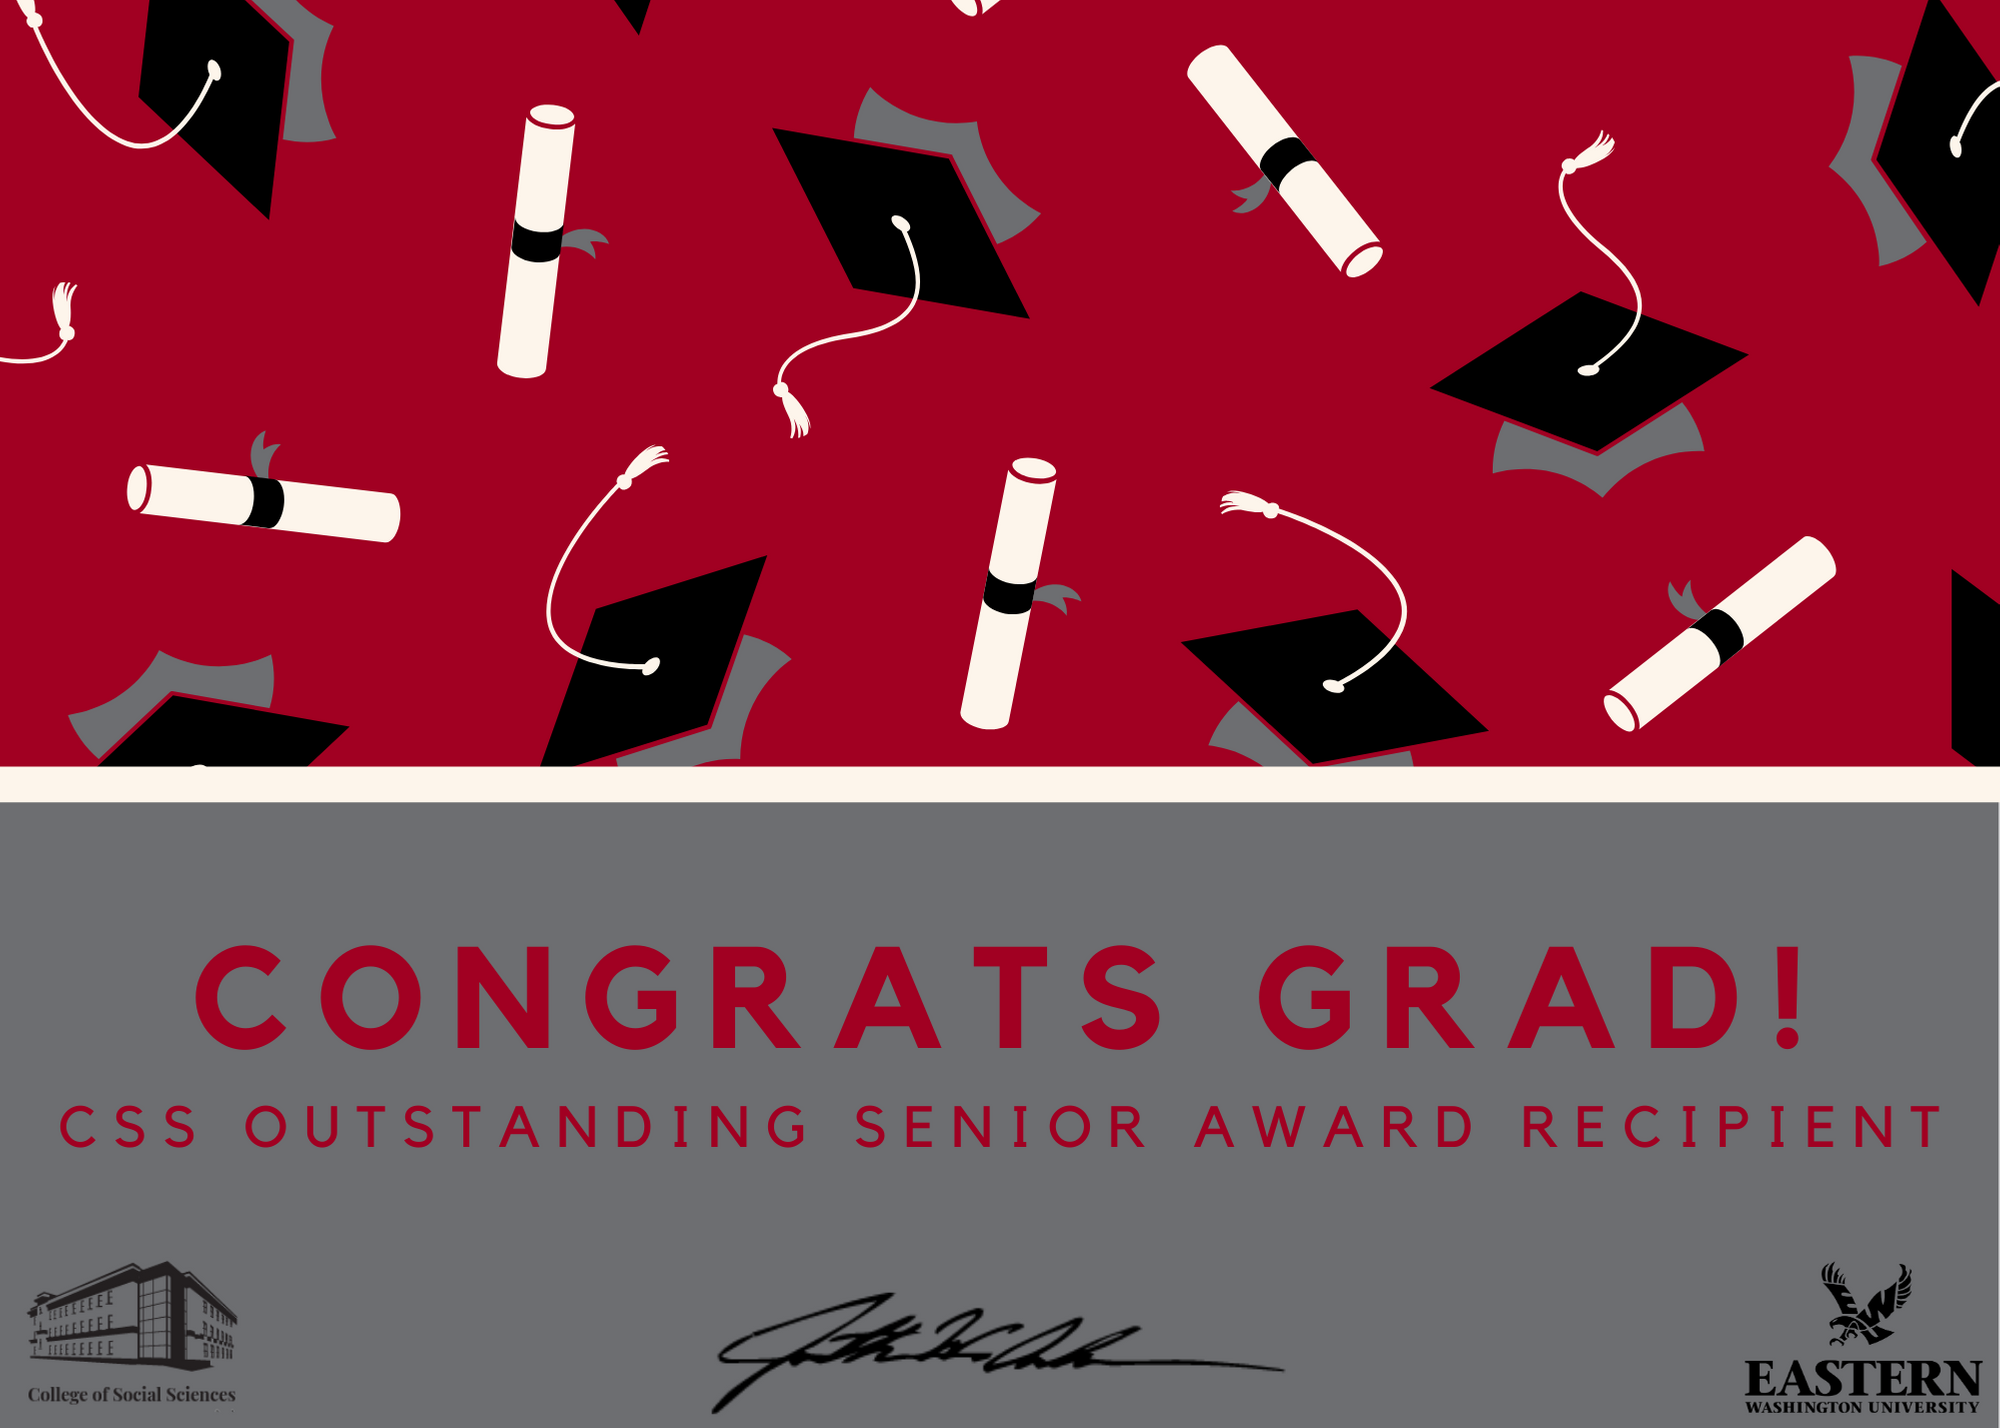 2493-caps-and-diplomas-pattern-graduation-card-2.png